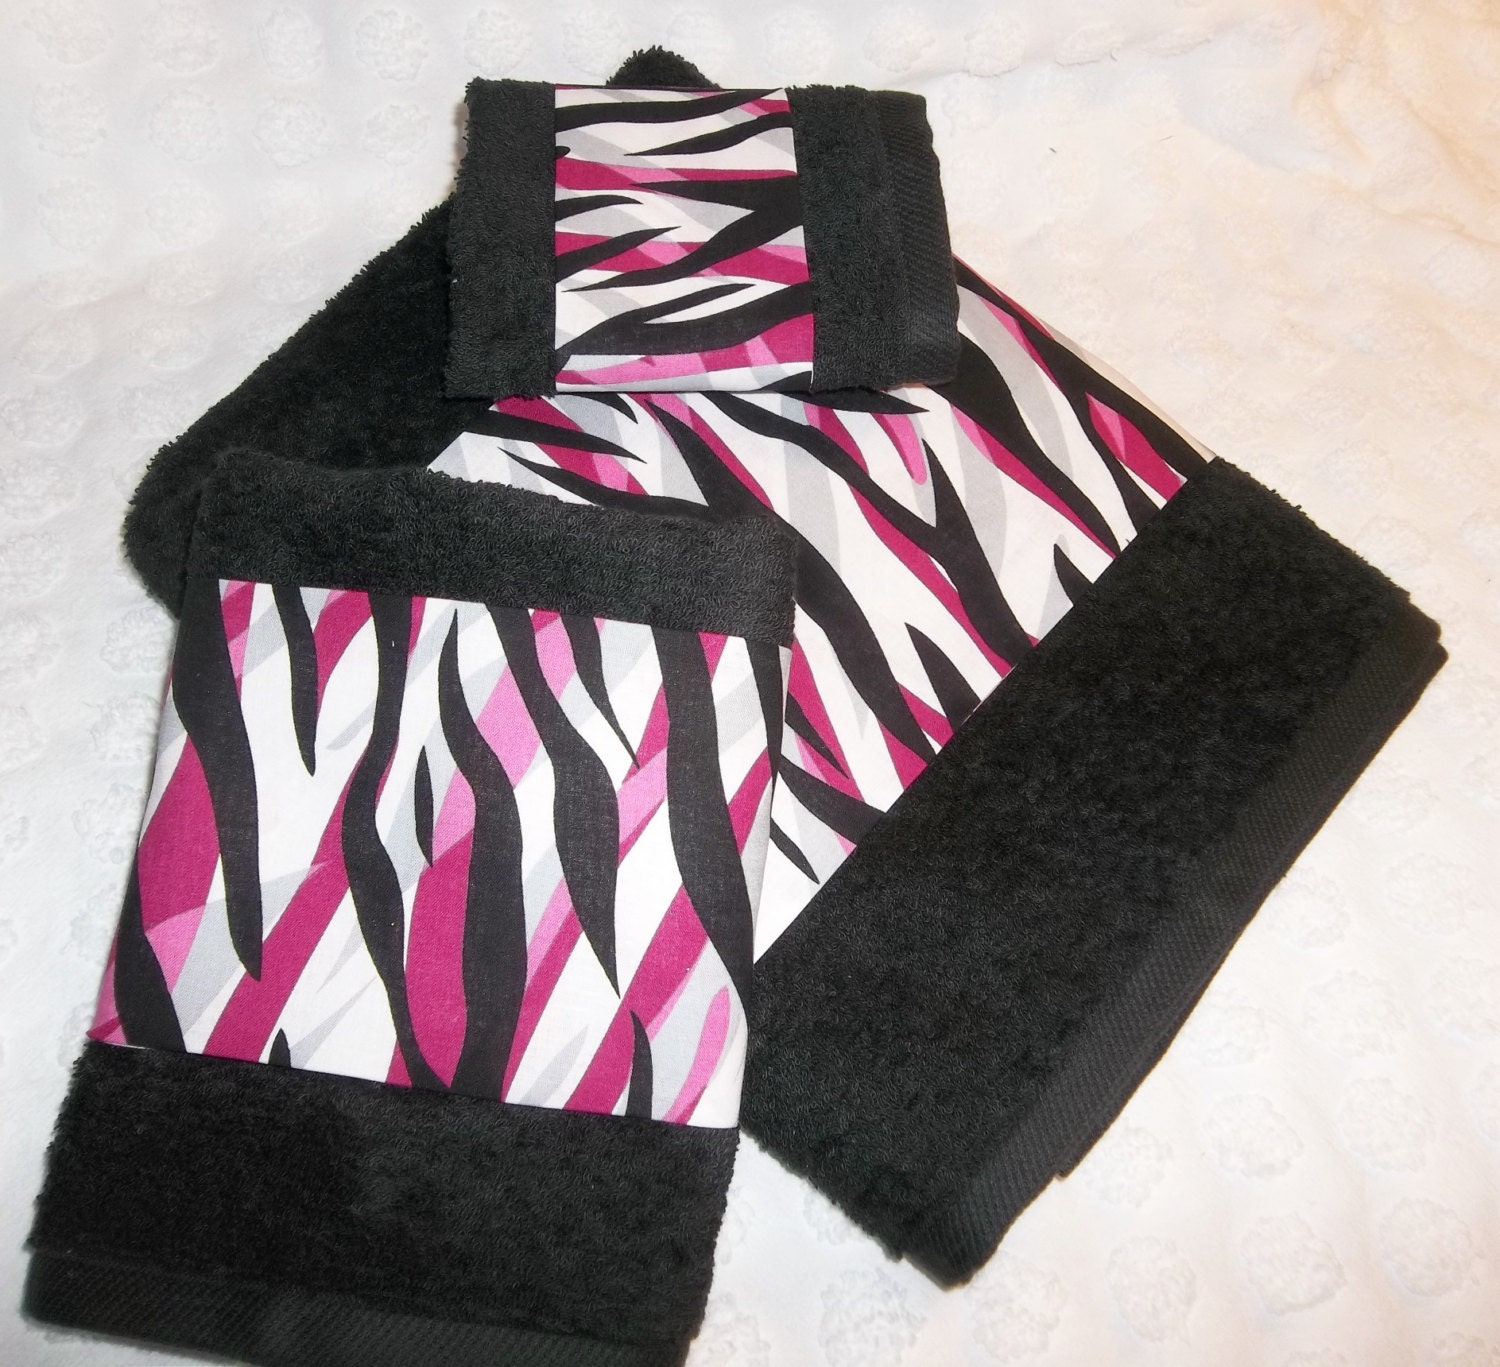 Bath Towel Sets Black And White: Black Hot Pink White Bath Towel 3 Piece Set Bath Decor BlaCK